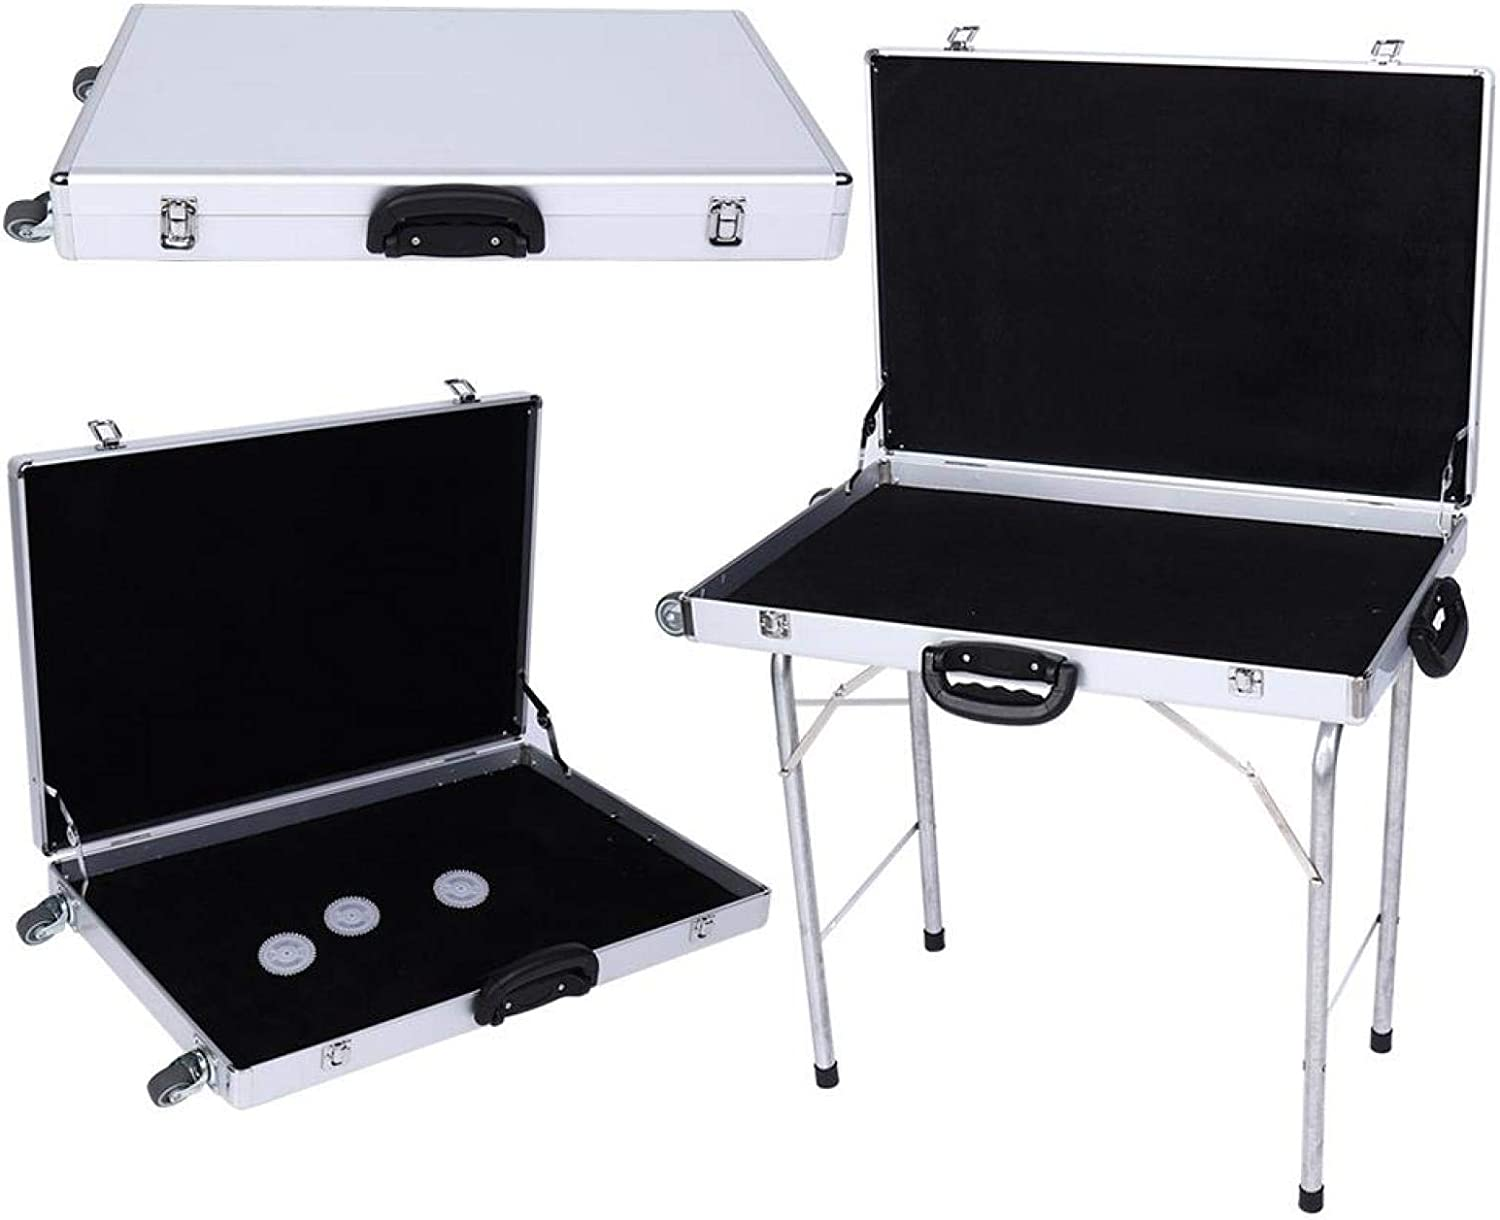 DAUERHAFT Folding Table Jewellery Suitcase 23.6 Display 31.5 3.9 Free shipping anywhere in the Classic nation